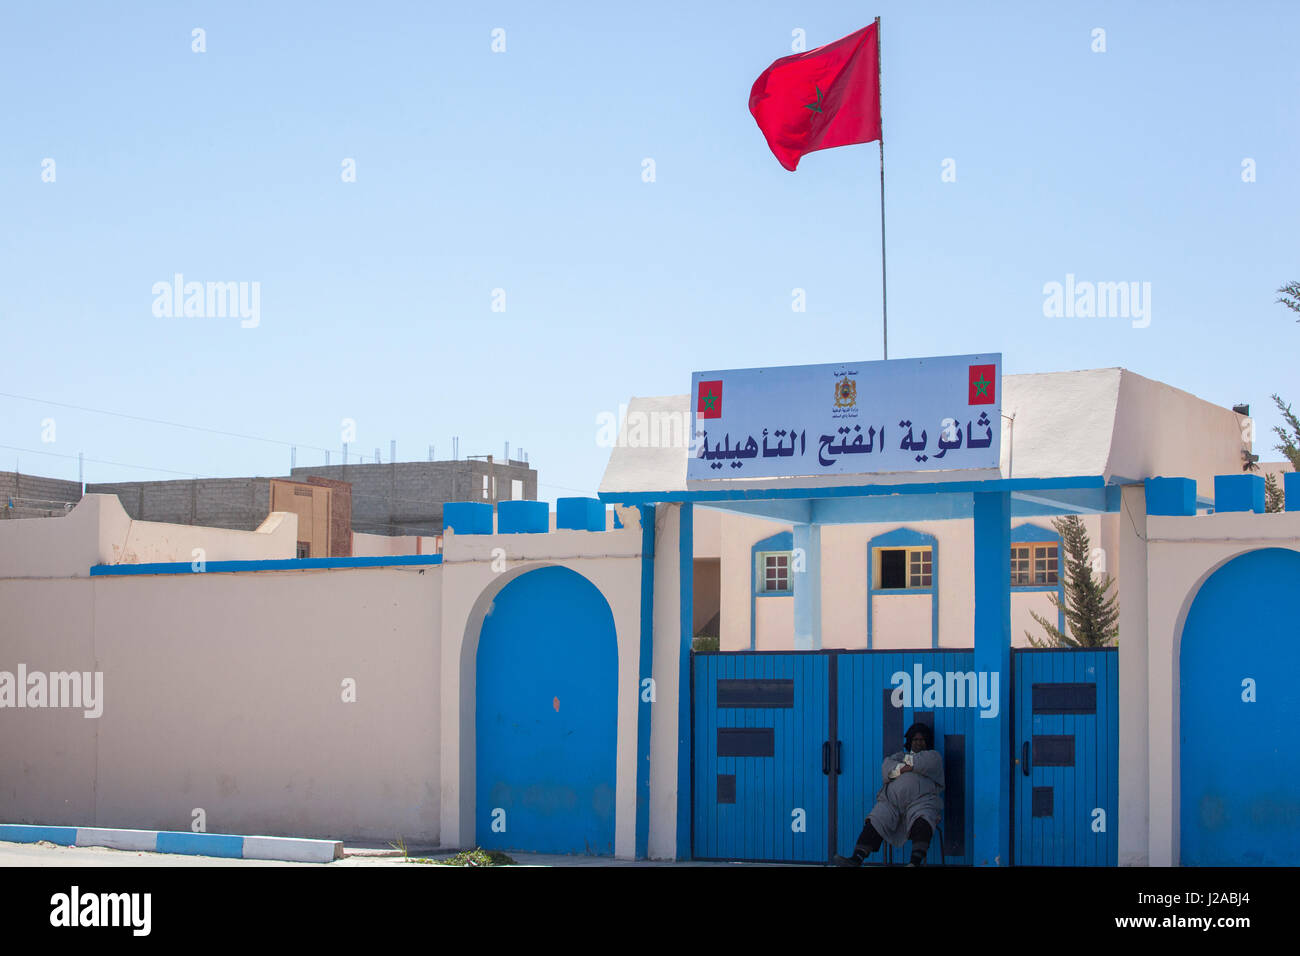 Africa, Western Sahara, Dakhla. Security outside a Moroccan government building. - Stock Image